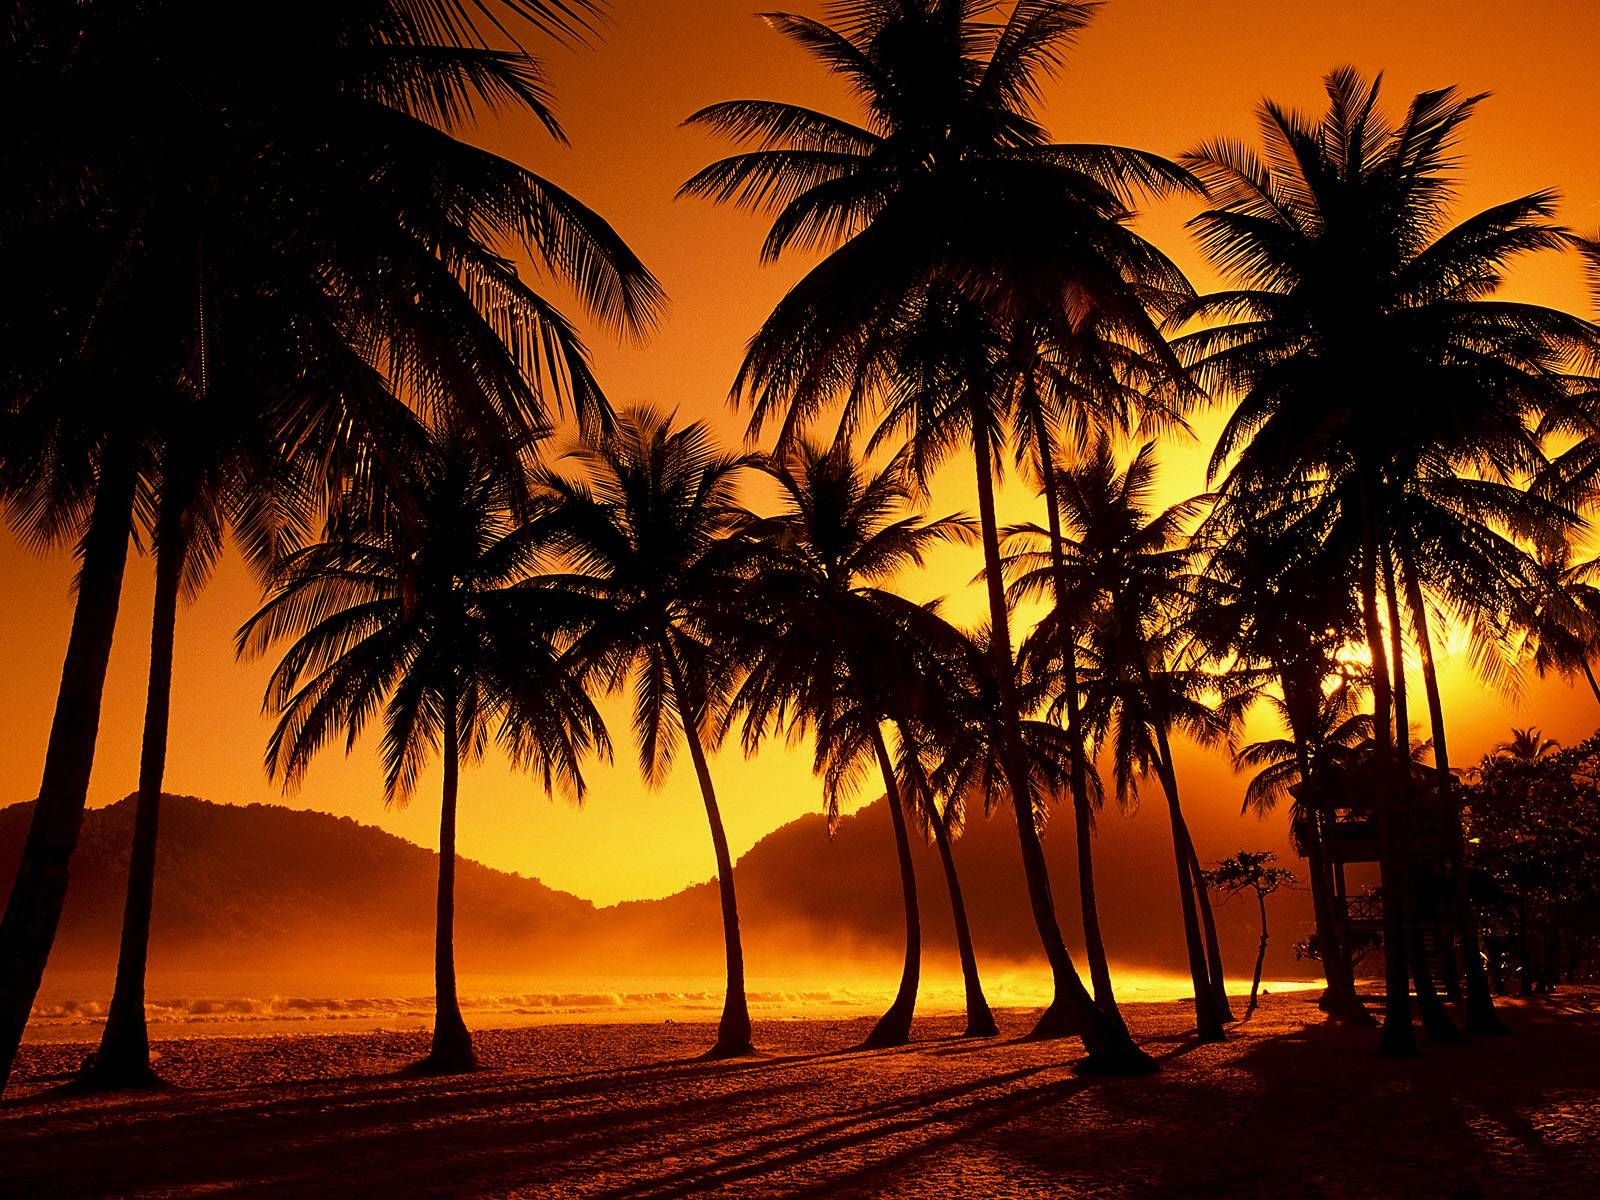 Palm Trees Silhouette HD desktop wallpaper Widescreen High